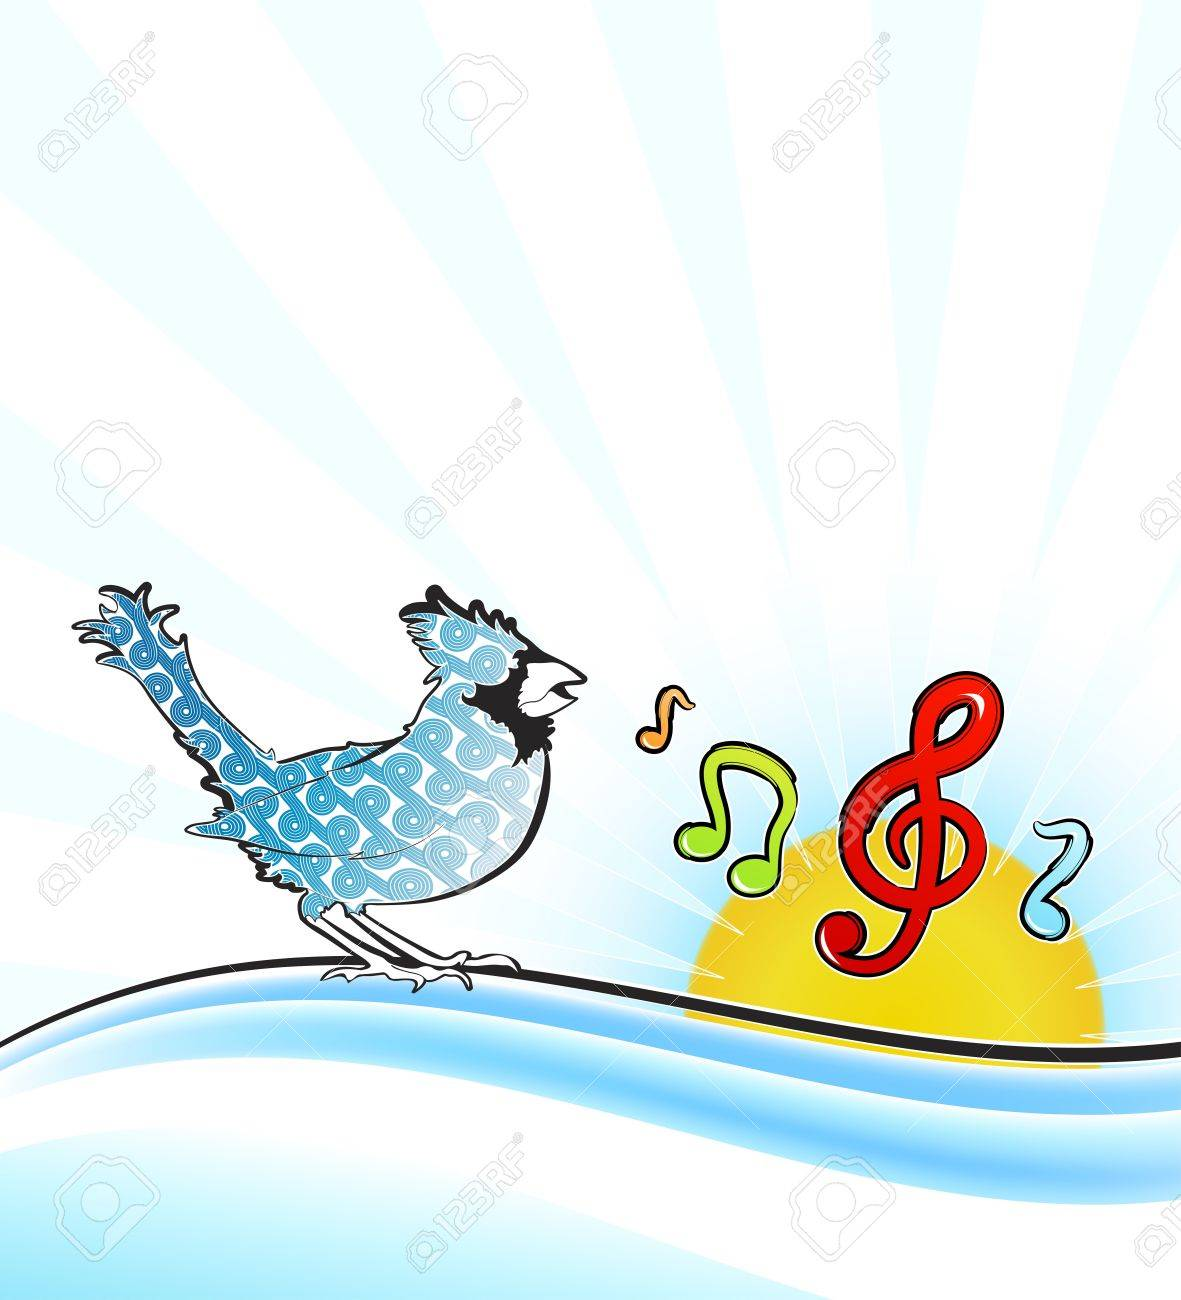 illustration of a beautiful patterned singing bird tweeting musical notes on a gradient wave decorating a sunny background design. Stock Vector - 6953227